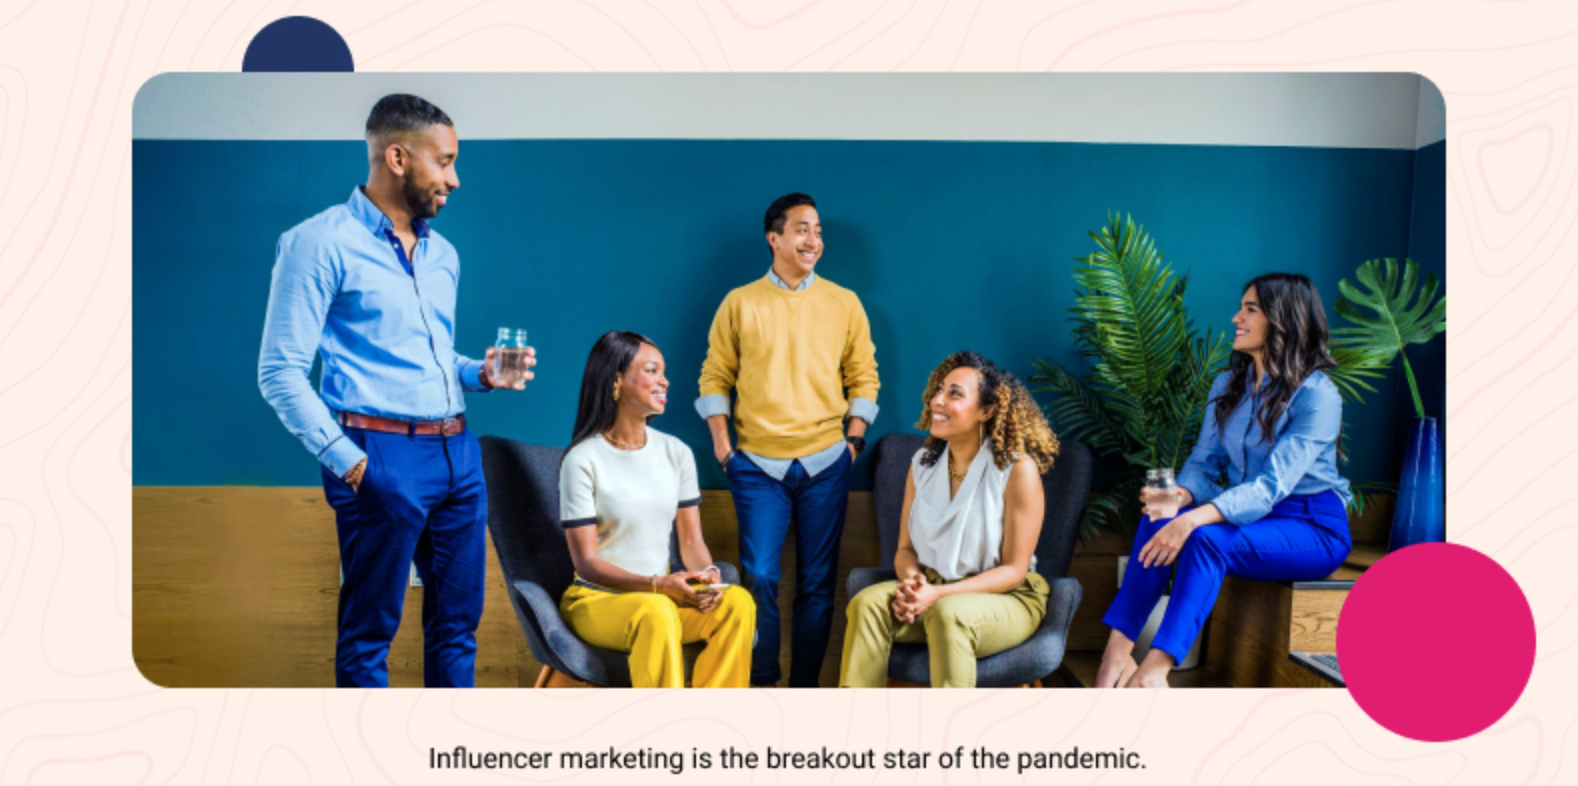 4 Benefits of Influencer Marketing That You Should Know